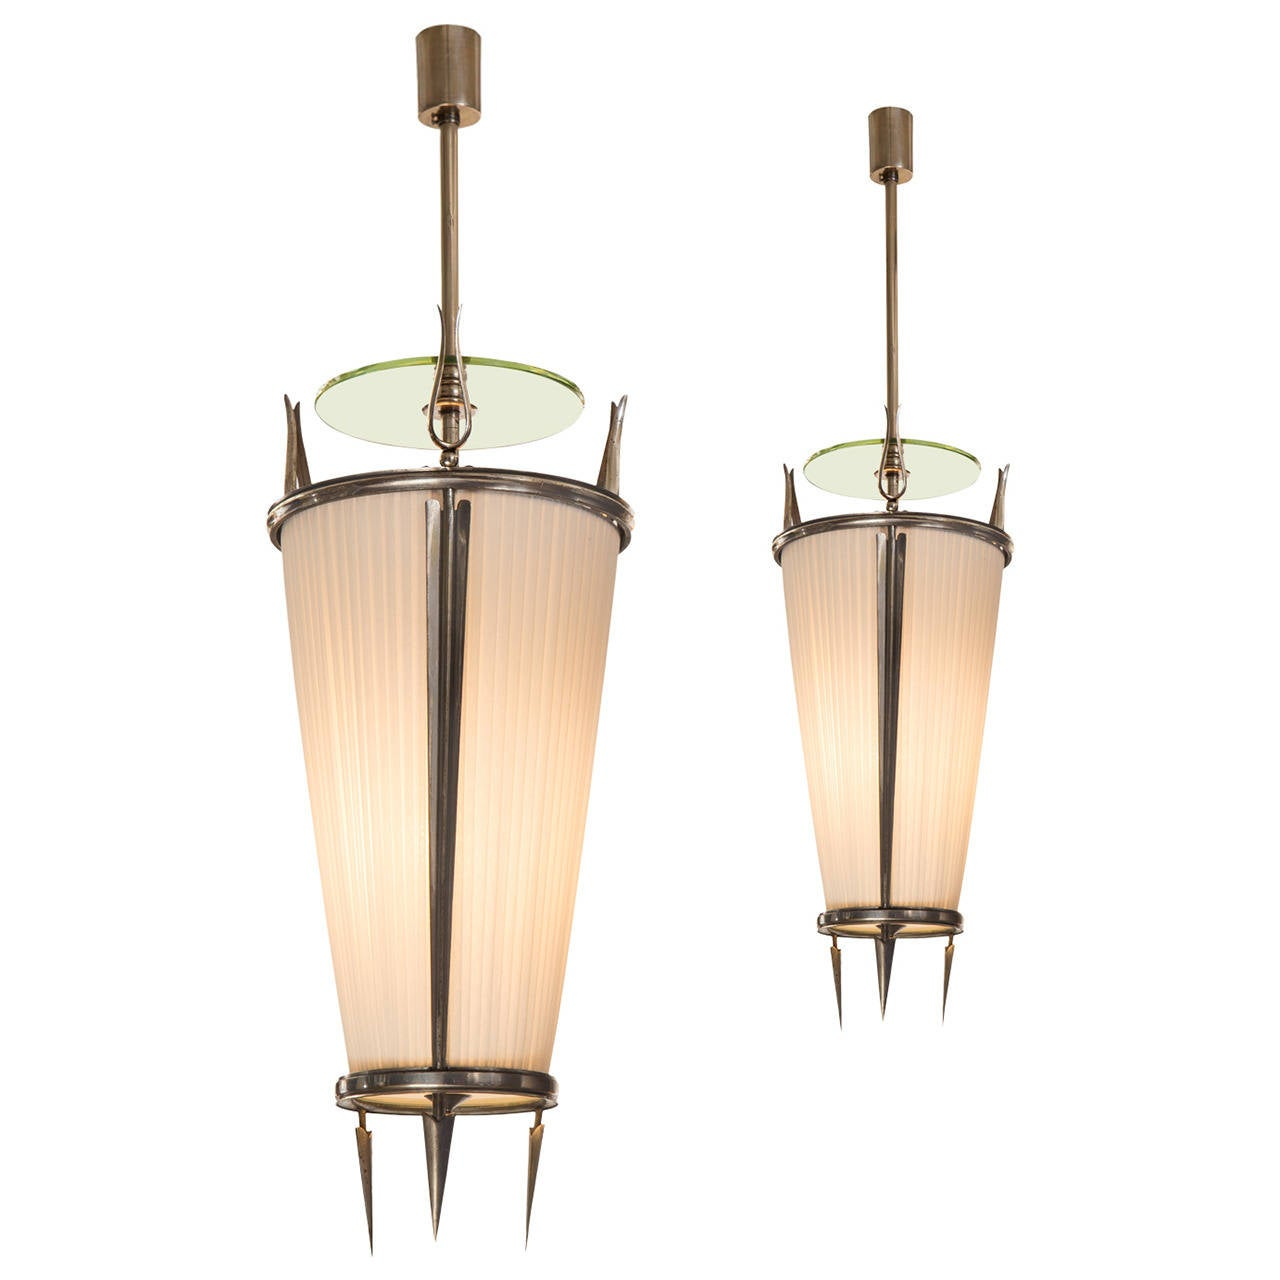 Paolo Buffa for Donzelli, a Pair of Silvered Bronze Lanterns